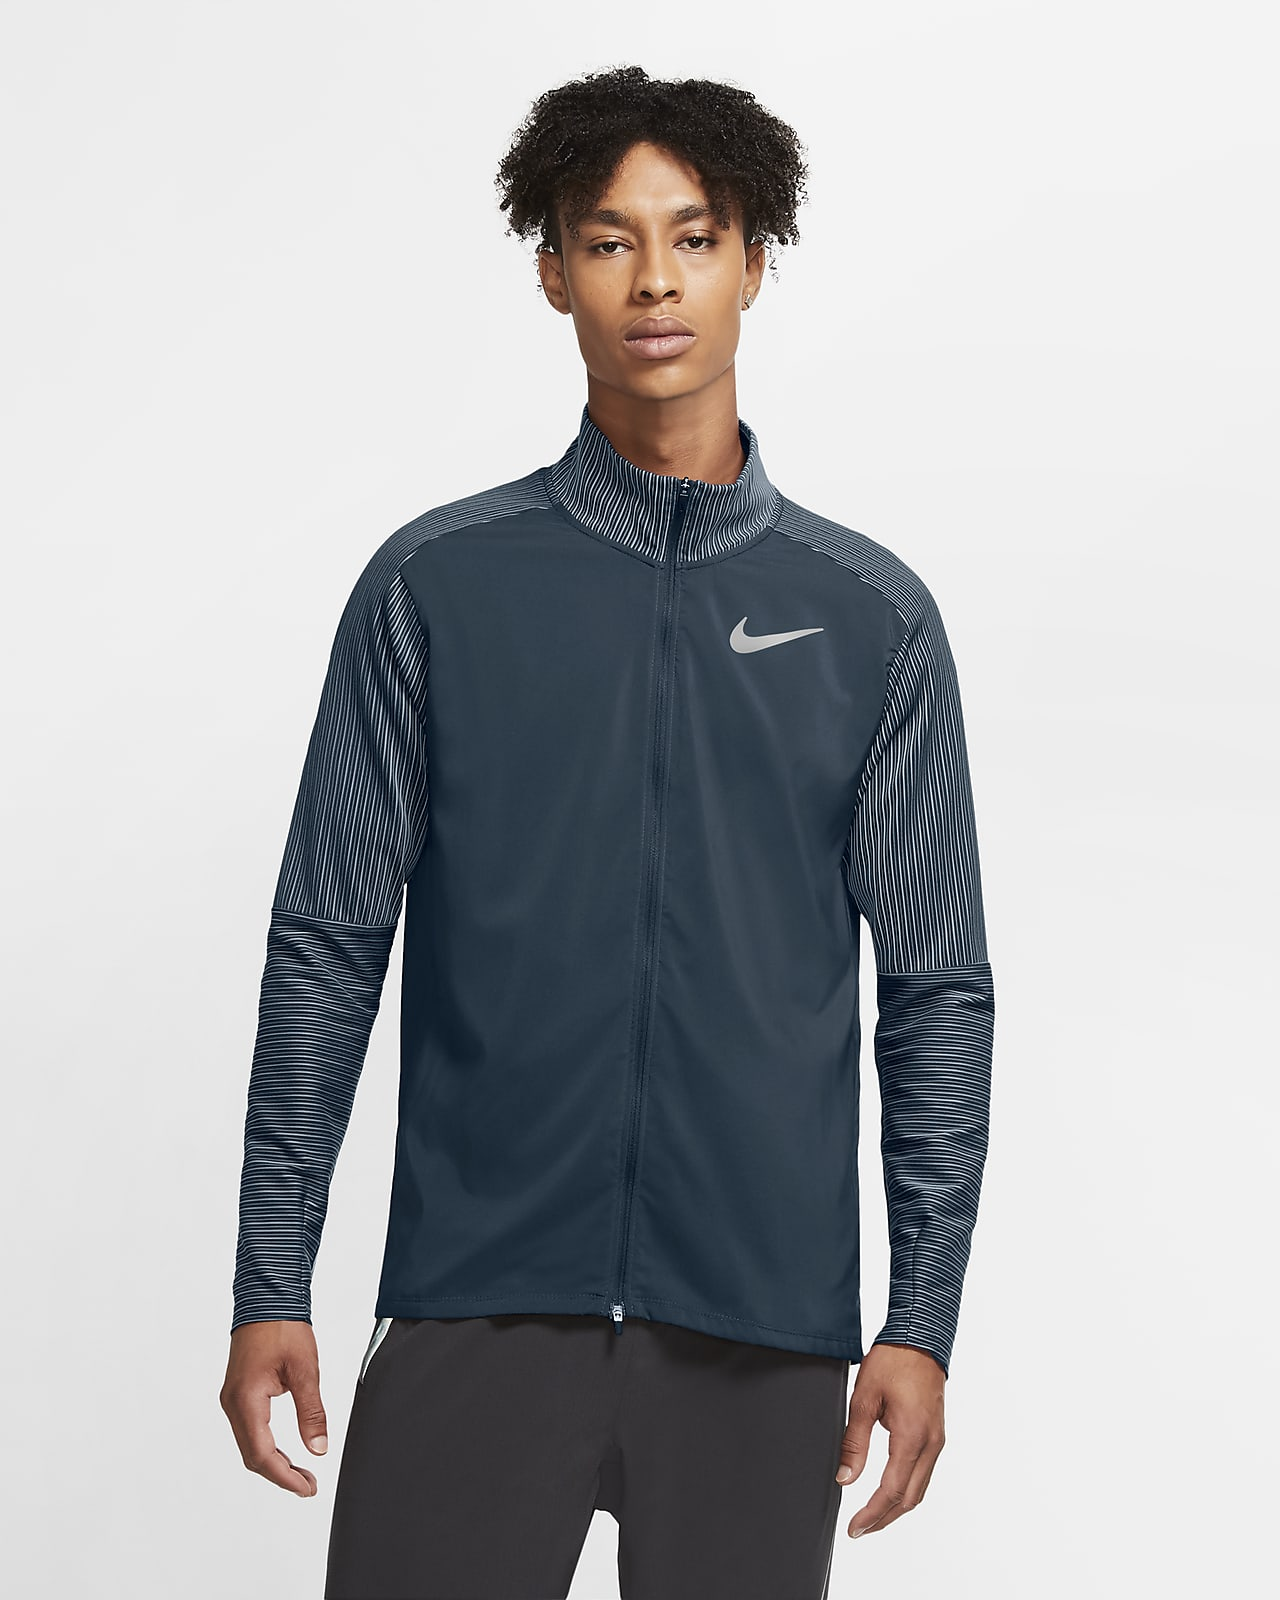 Nike Future Fast Men's Hybrid Running Top